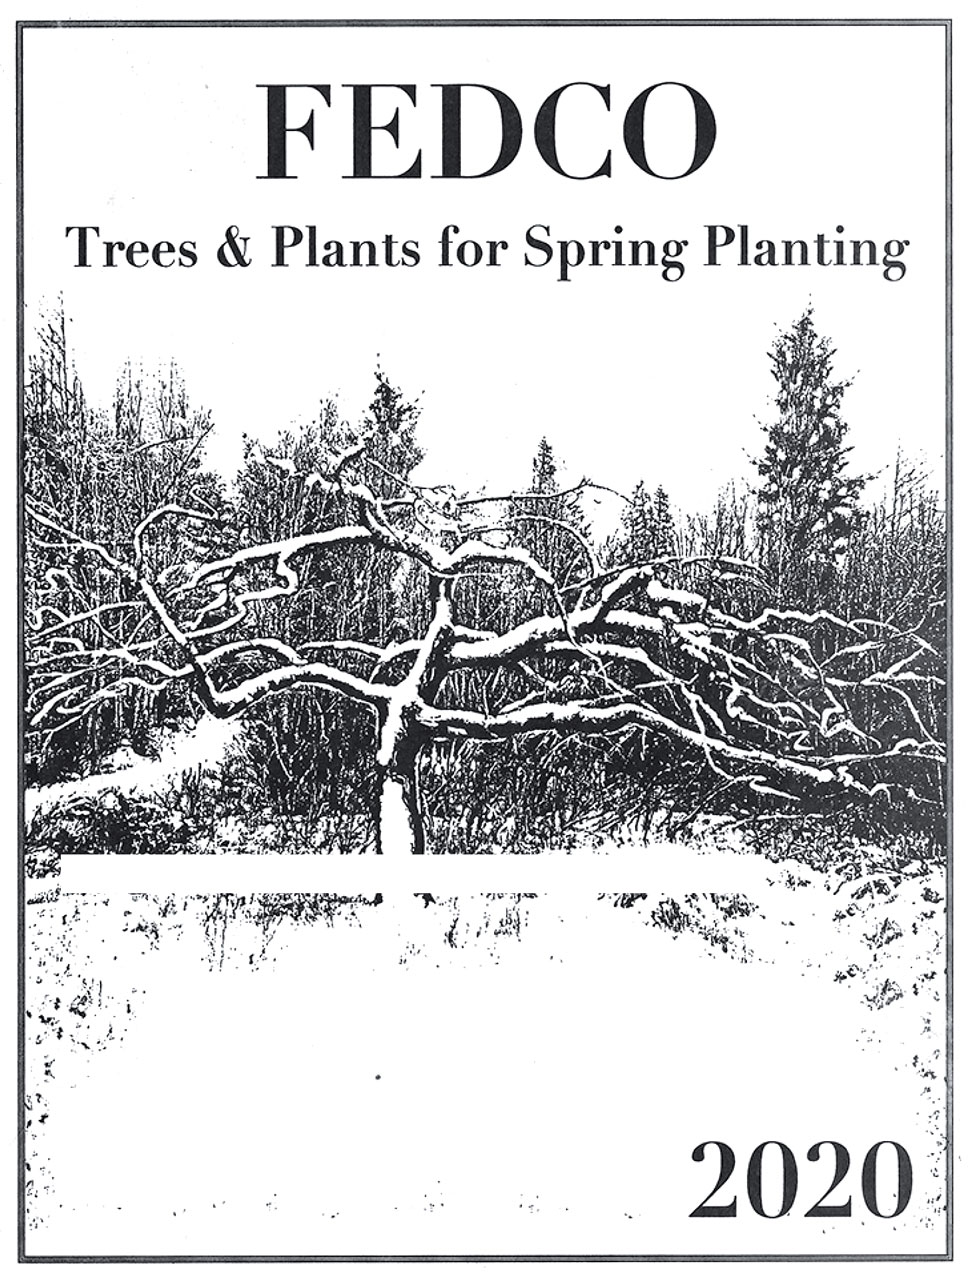 Fedco Trees and Plants for Spring Planting